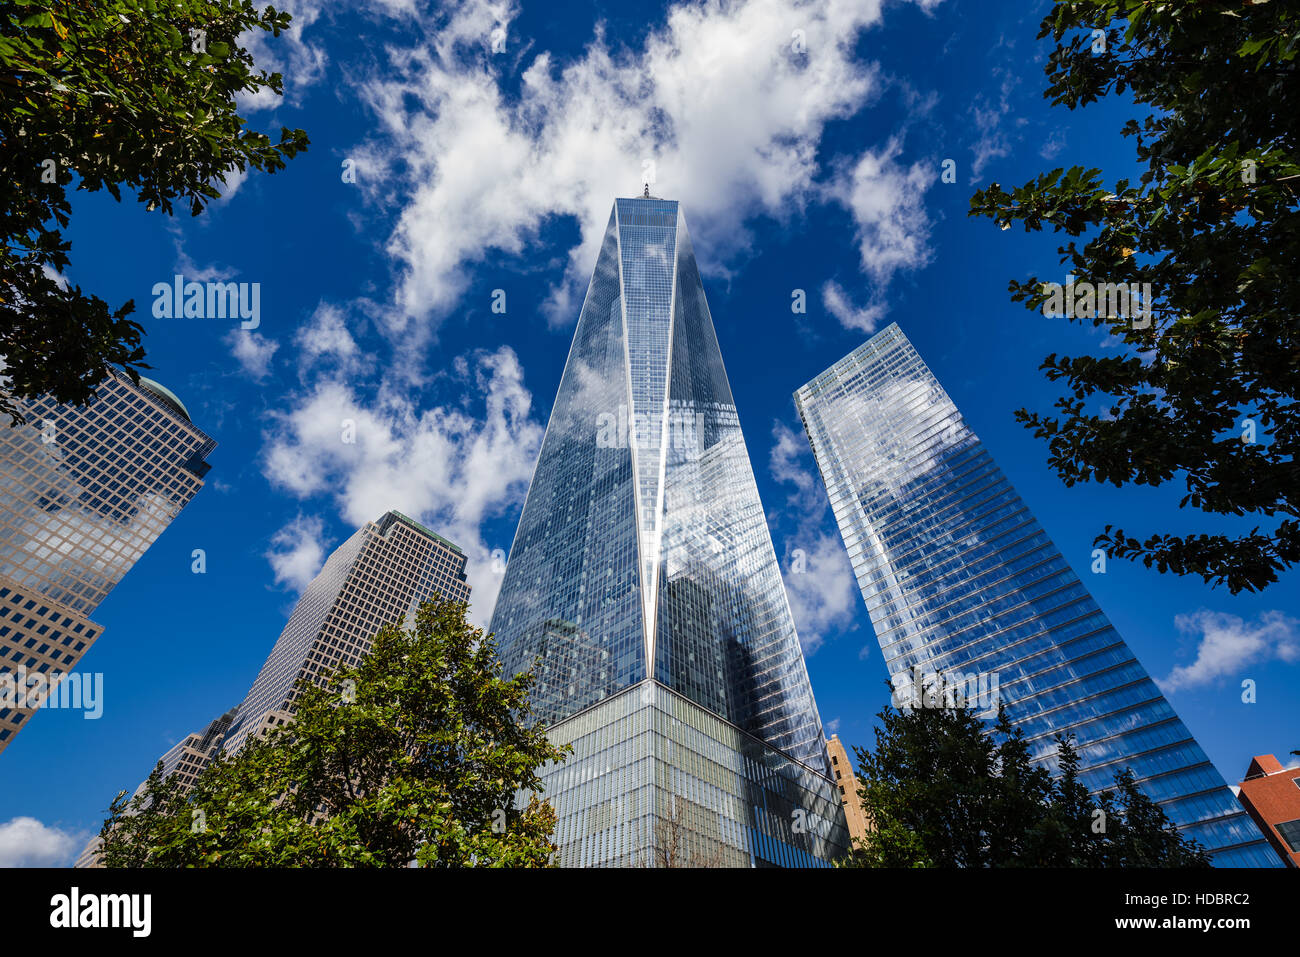 One and Seven World Trade Center skyscrapers with a blue morning sky. Manhattan, New York City - Stock Image